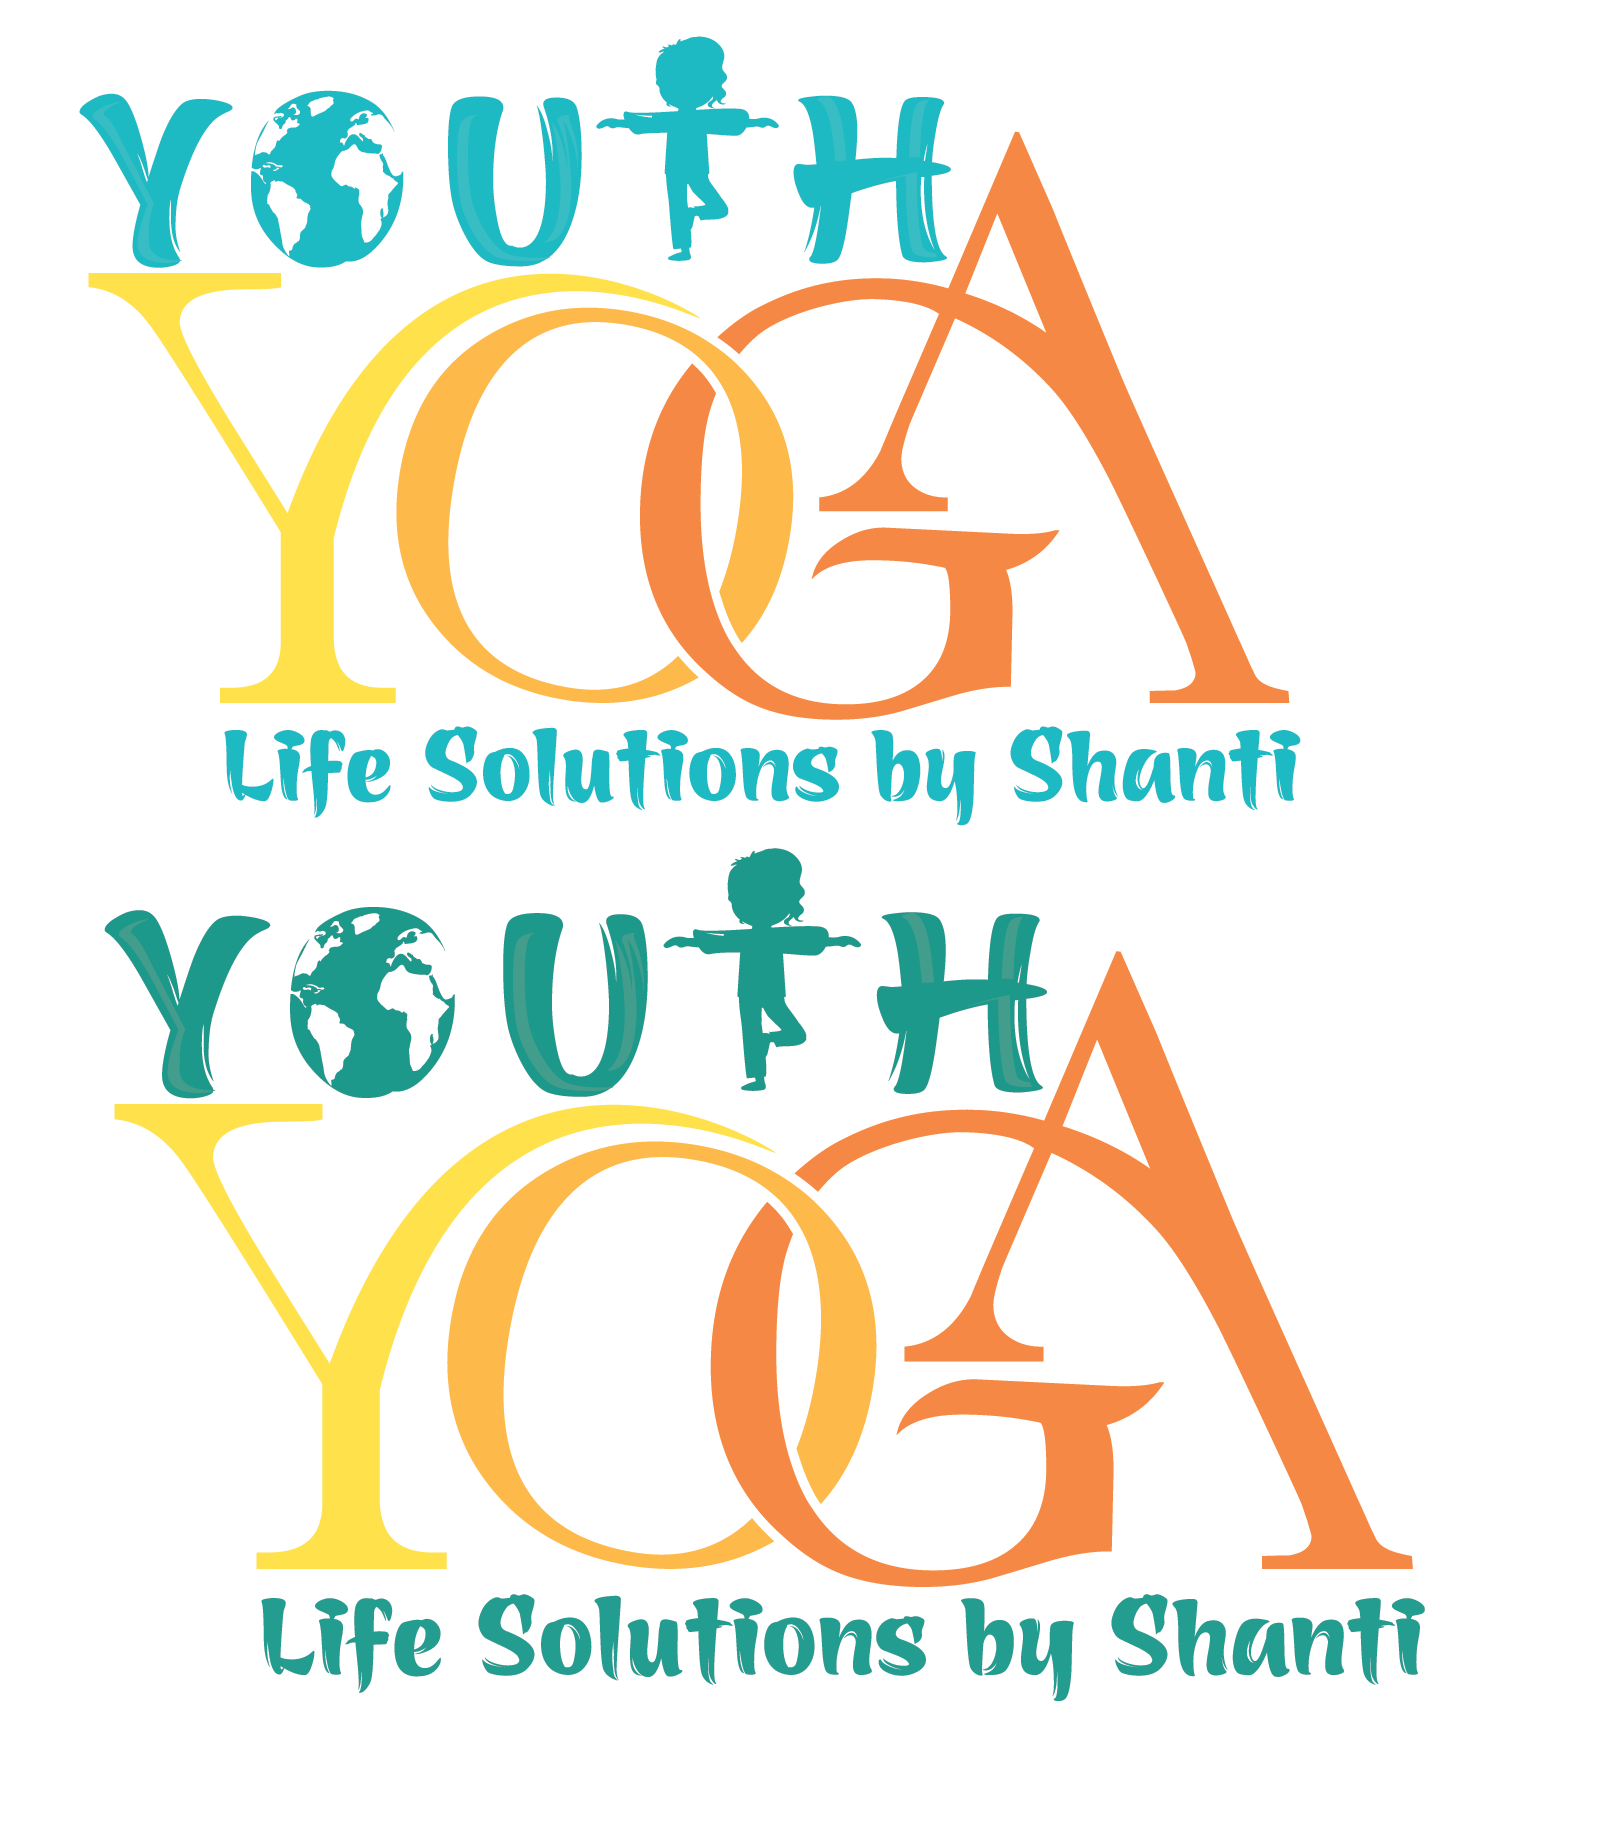 A creative, fun yet wholesome youth yoga package. Revolutionary Yoga practice for kids!